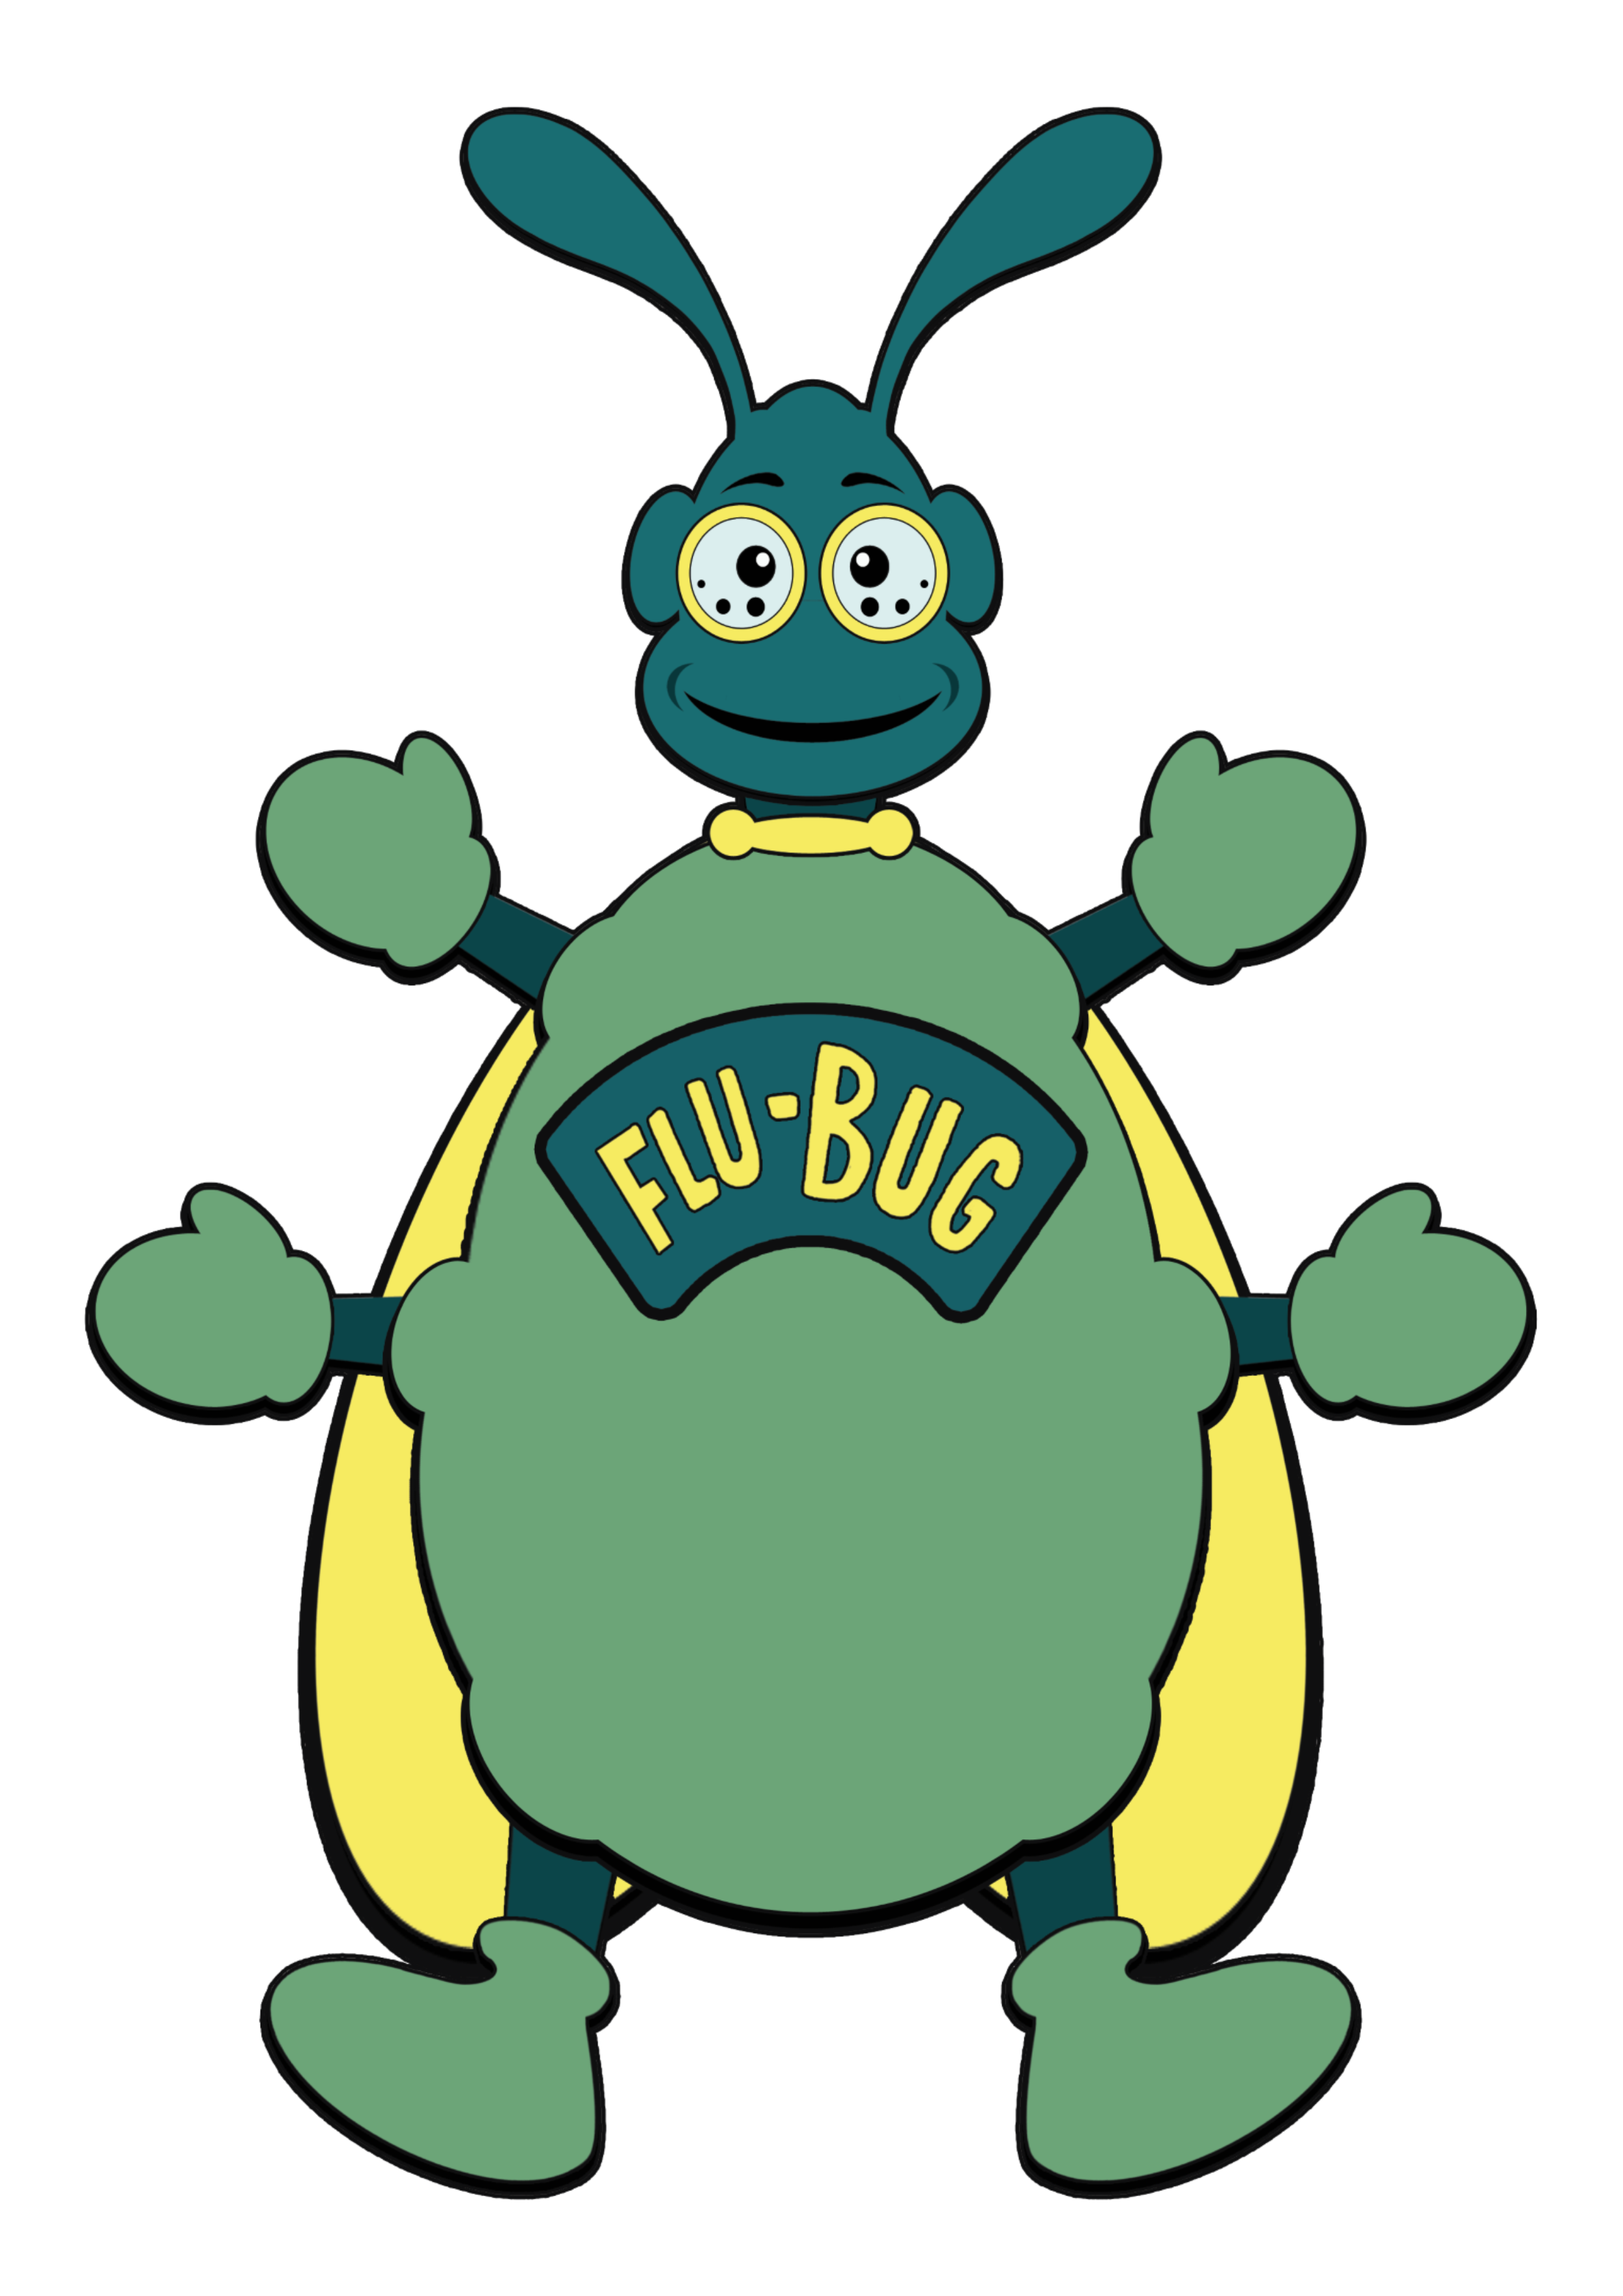 Flu Bug Transparent - no lines